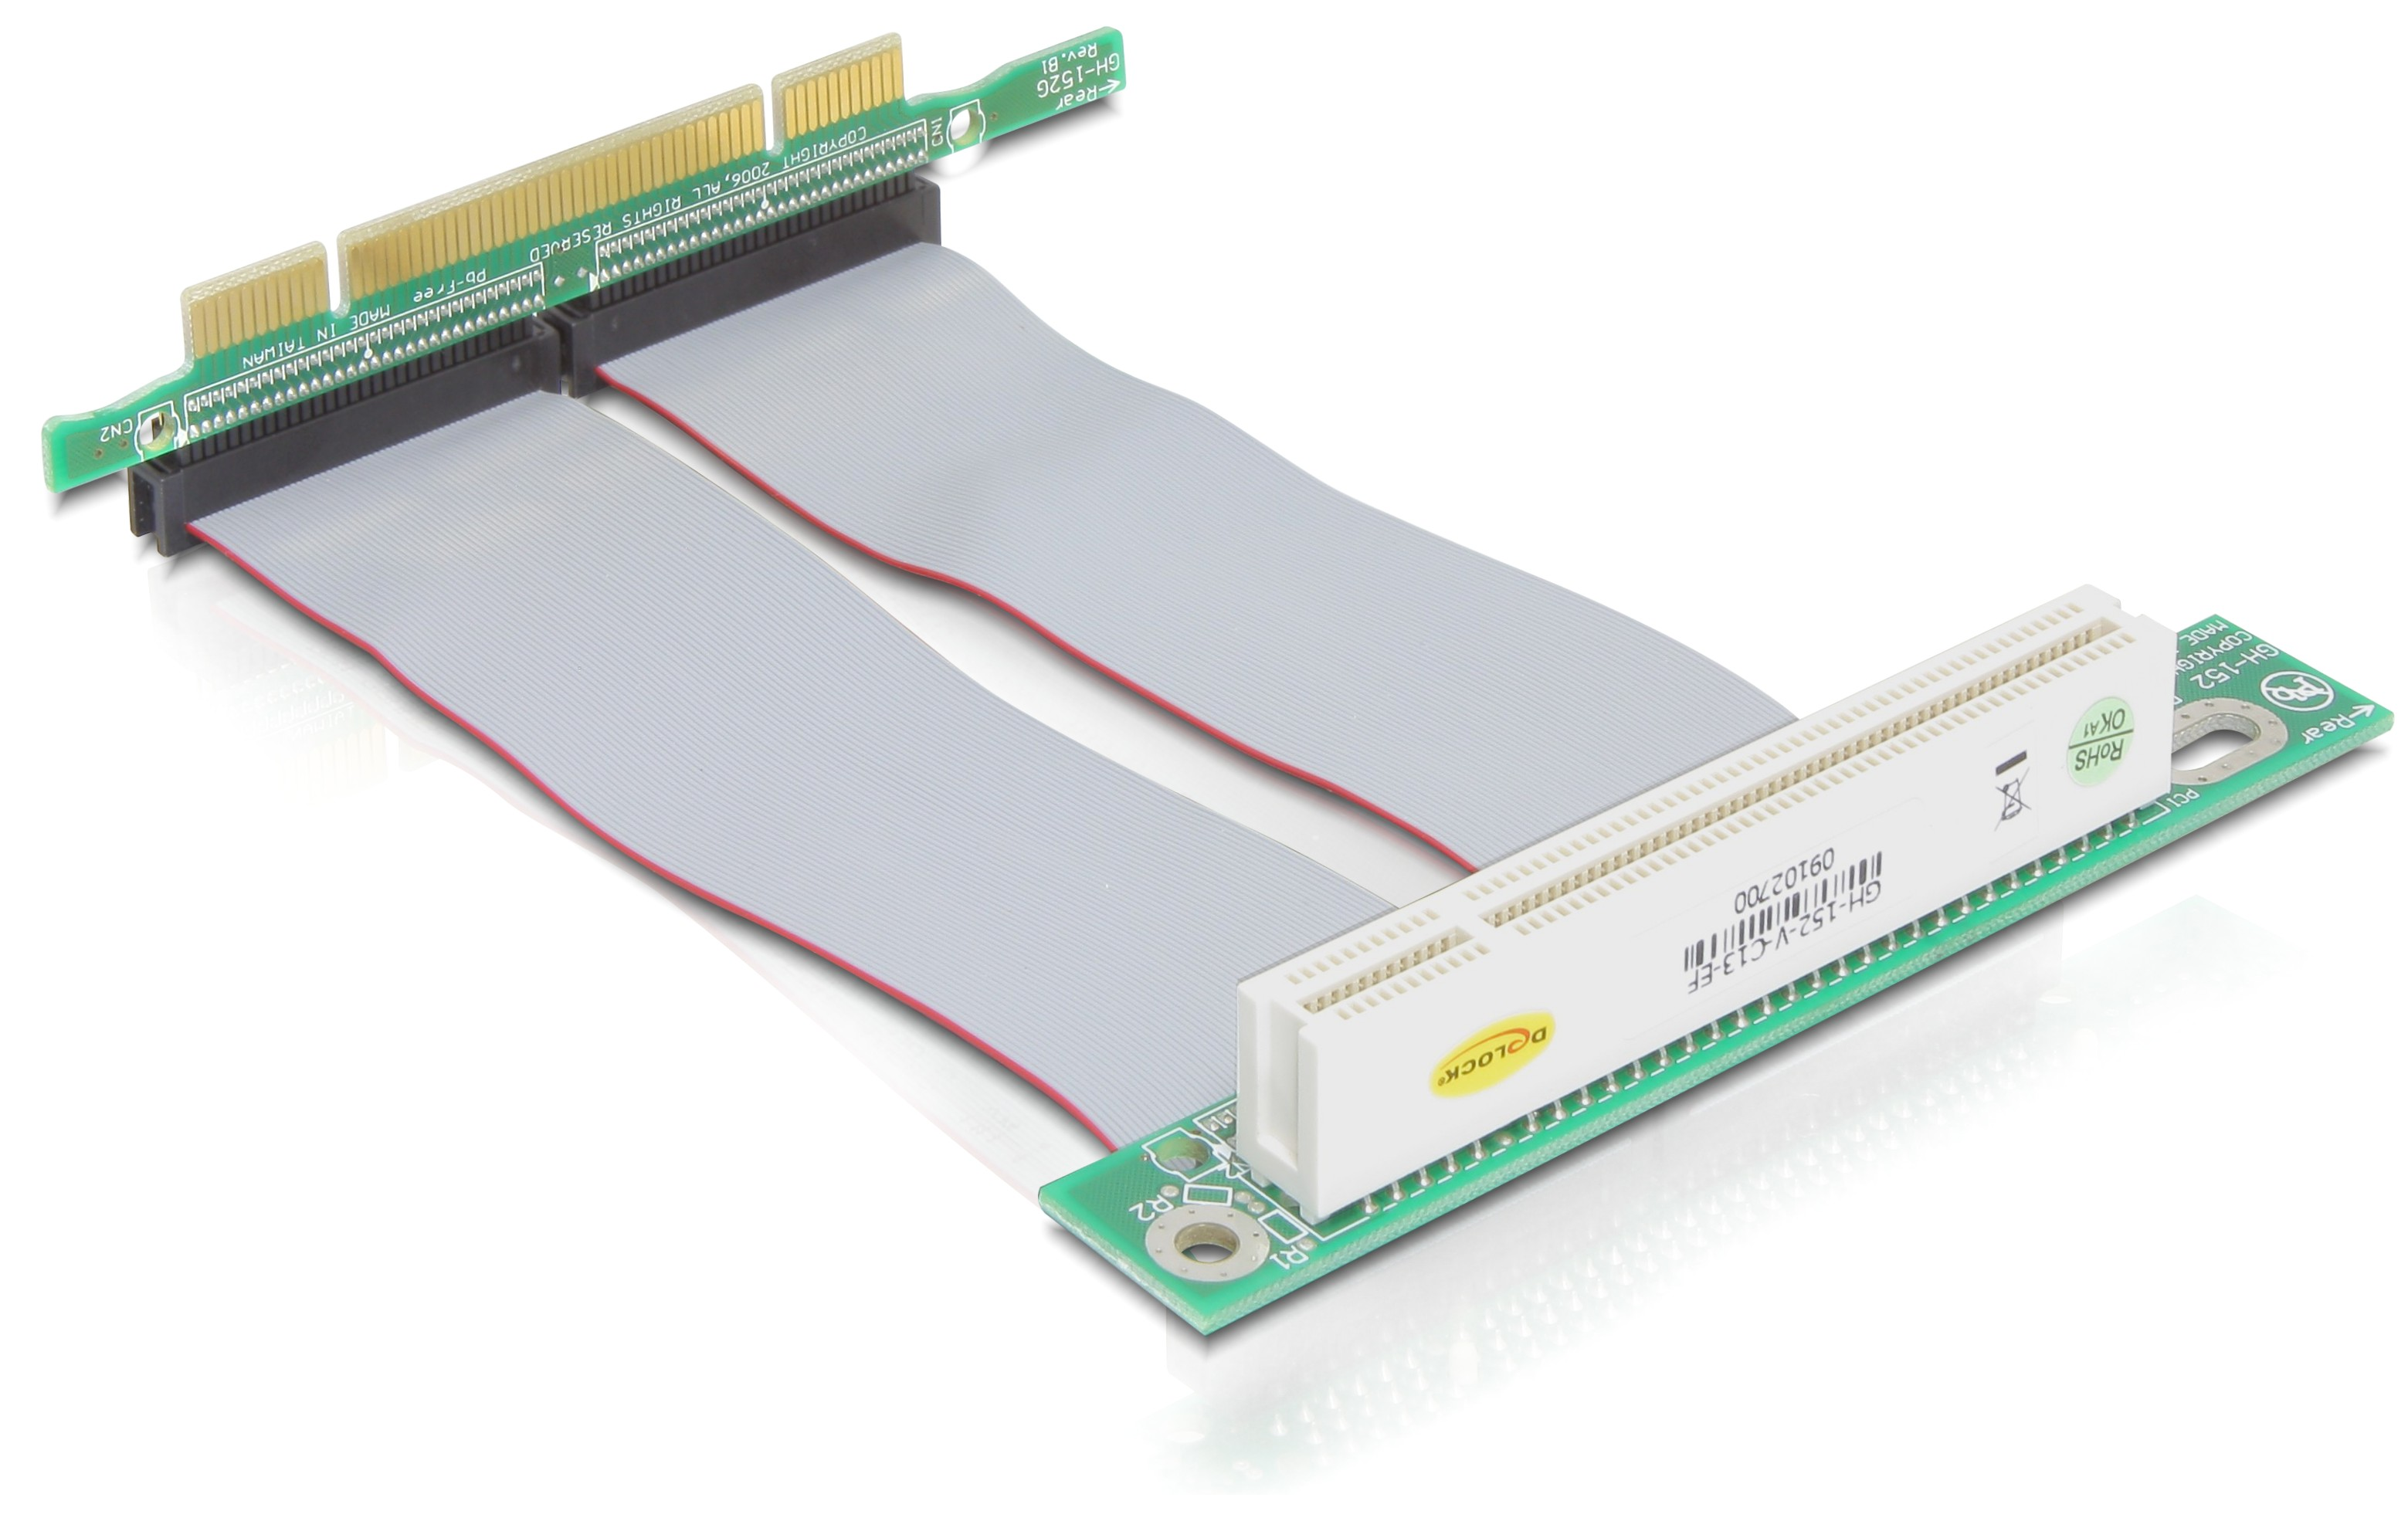 Delock Riser card PCI angled 90° left insertion with 13 cm cable